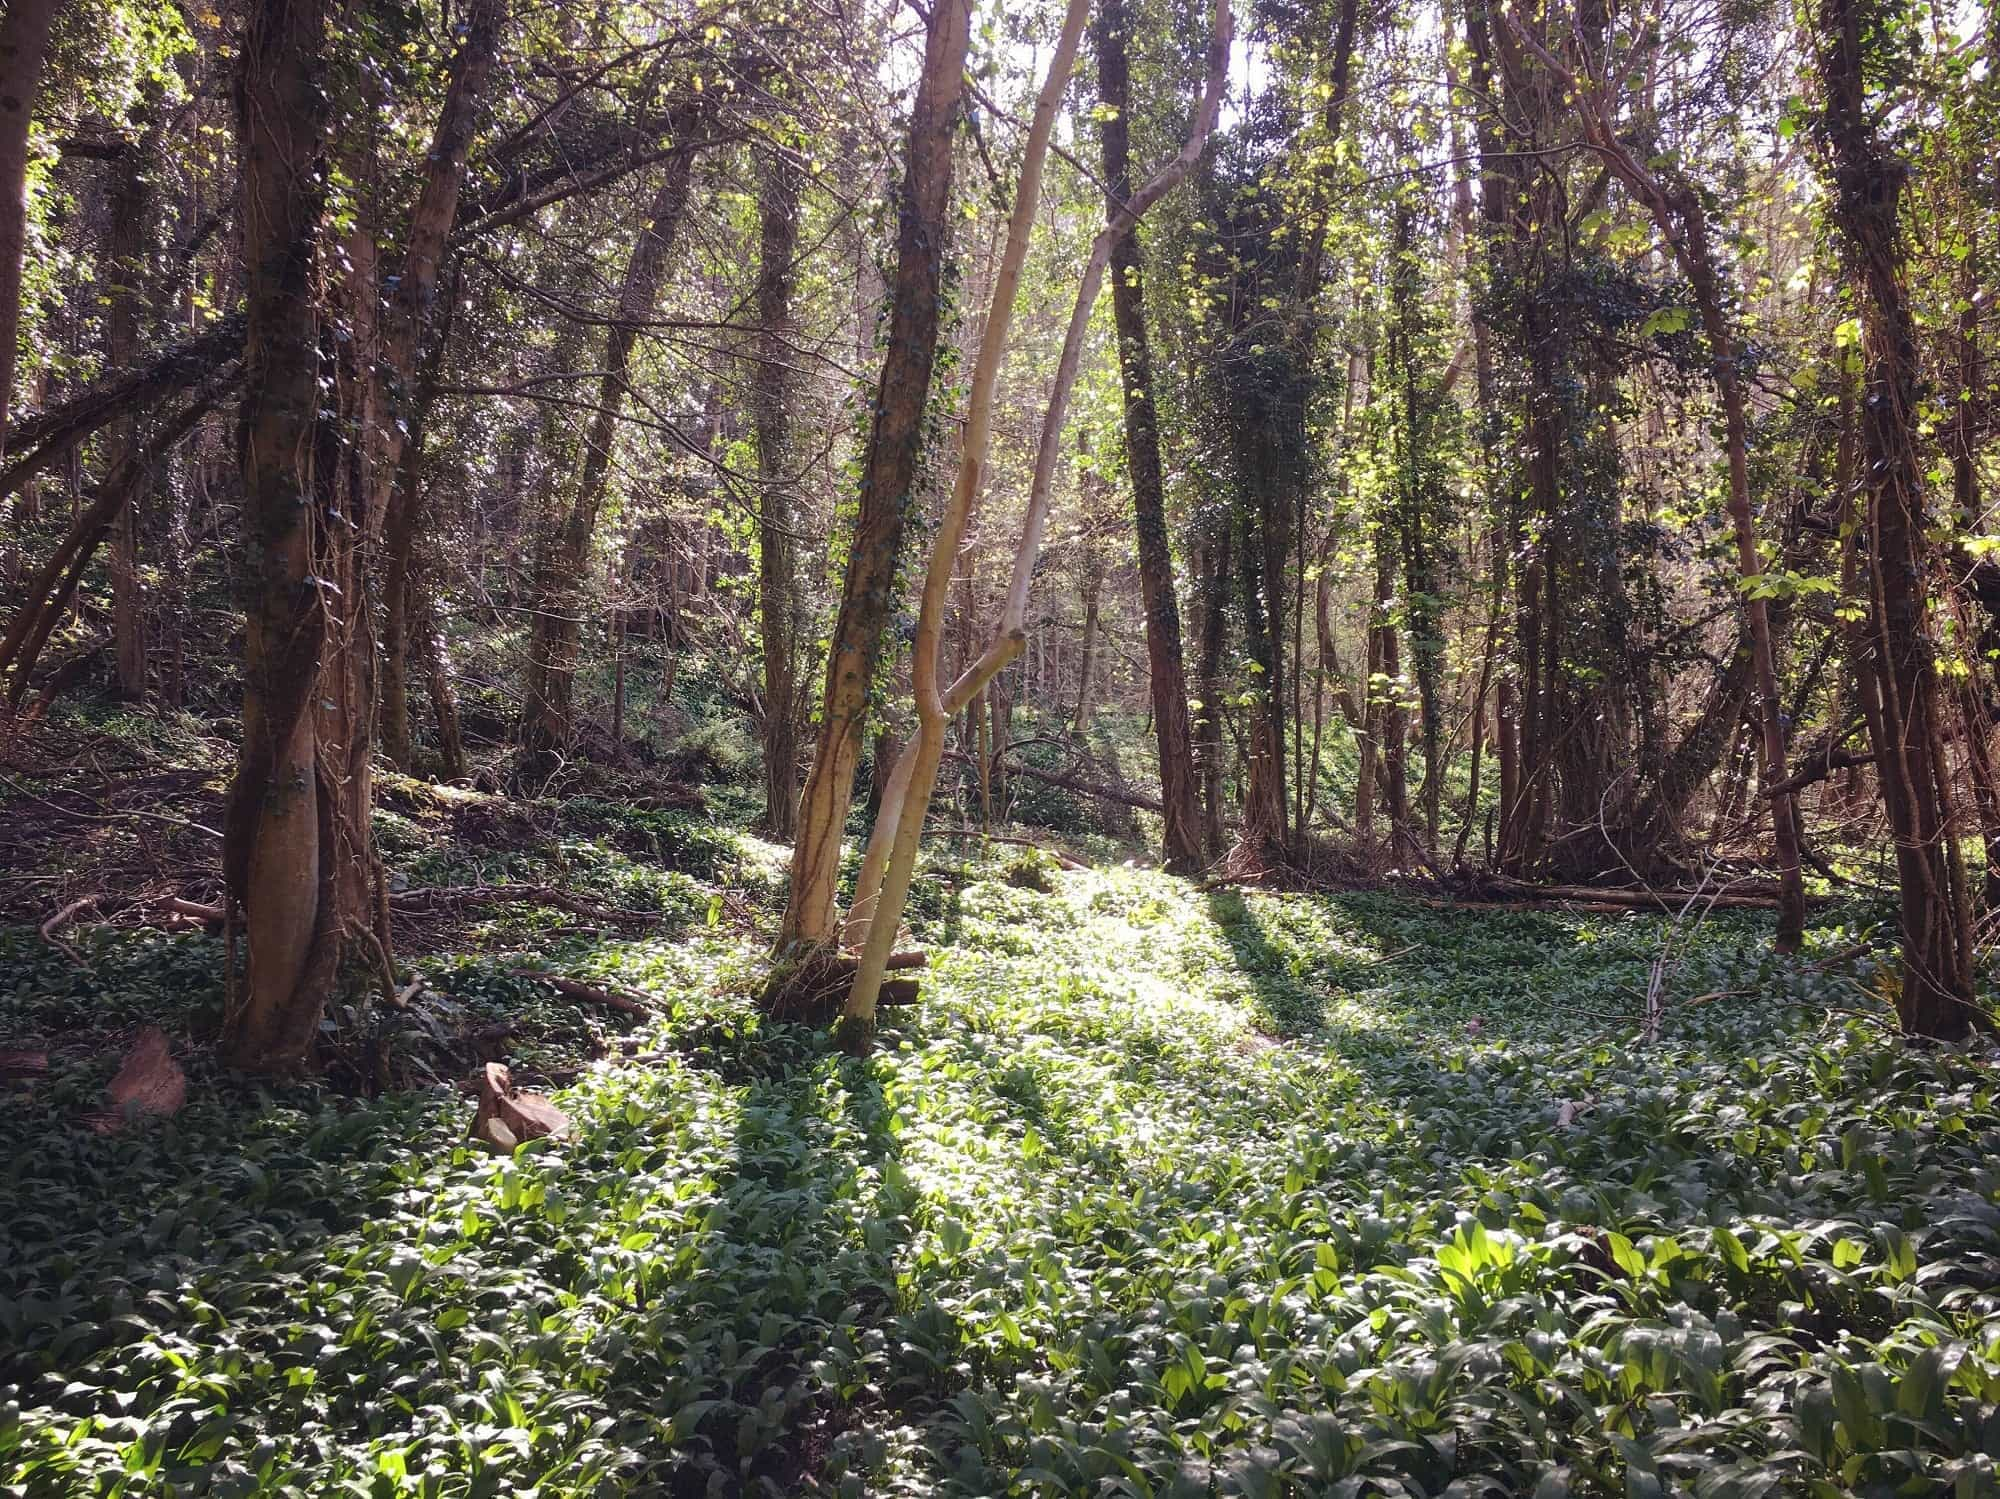 Wild Garlic in the Wye Valley